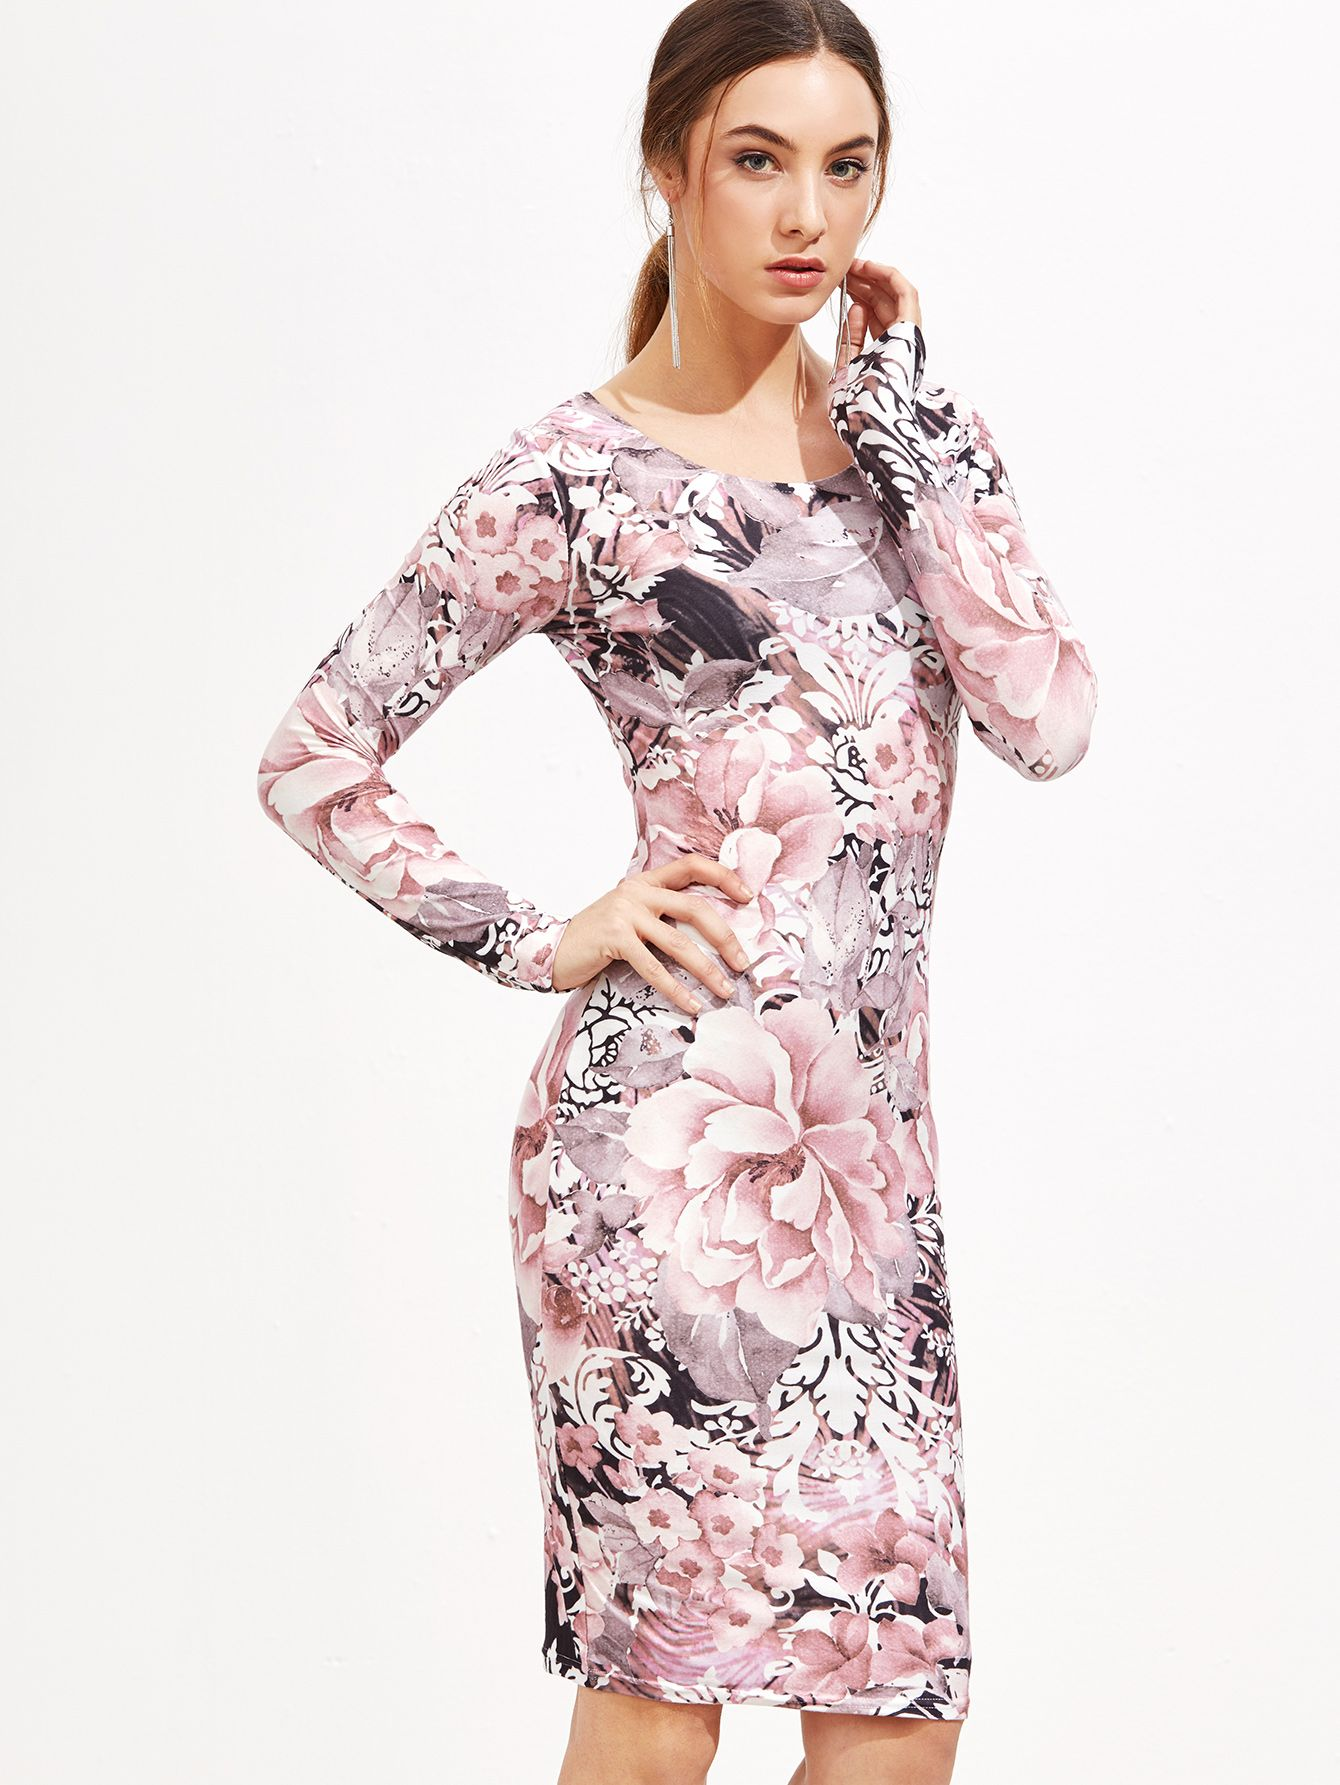 Floral Print Pencil Dress — 0.00 € ------------------------------color: Multicolor size: L,S,XL